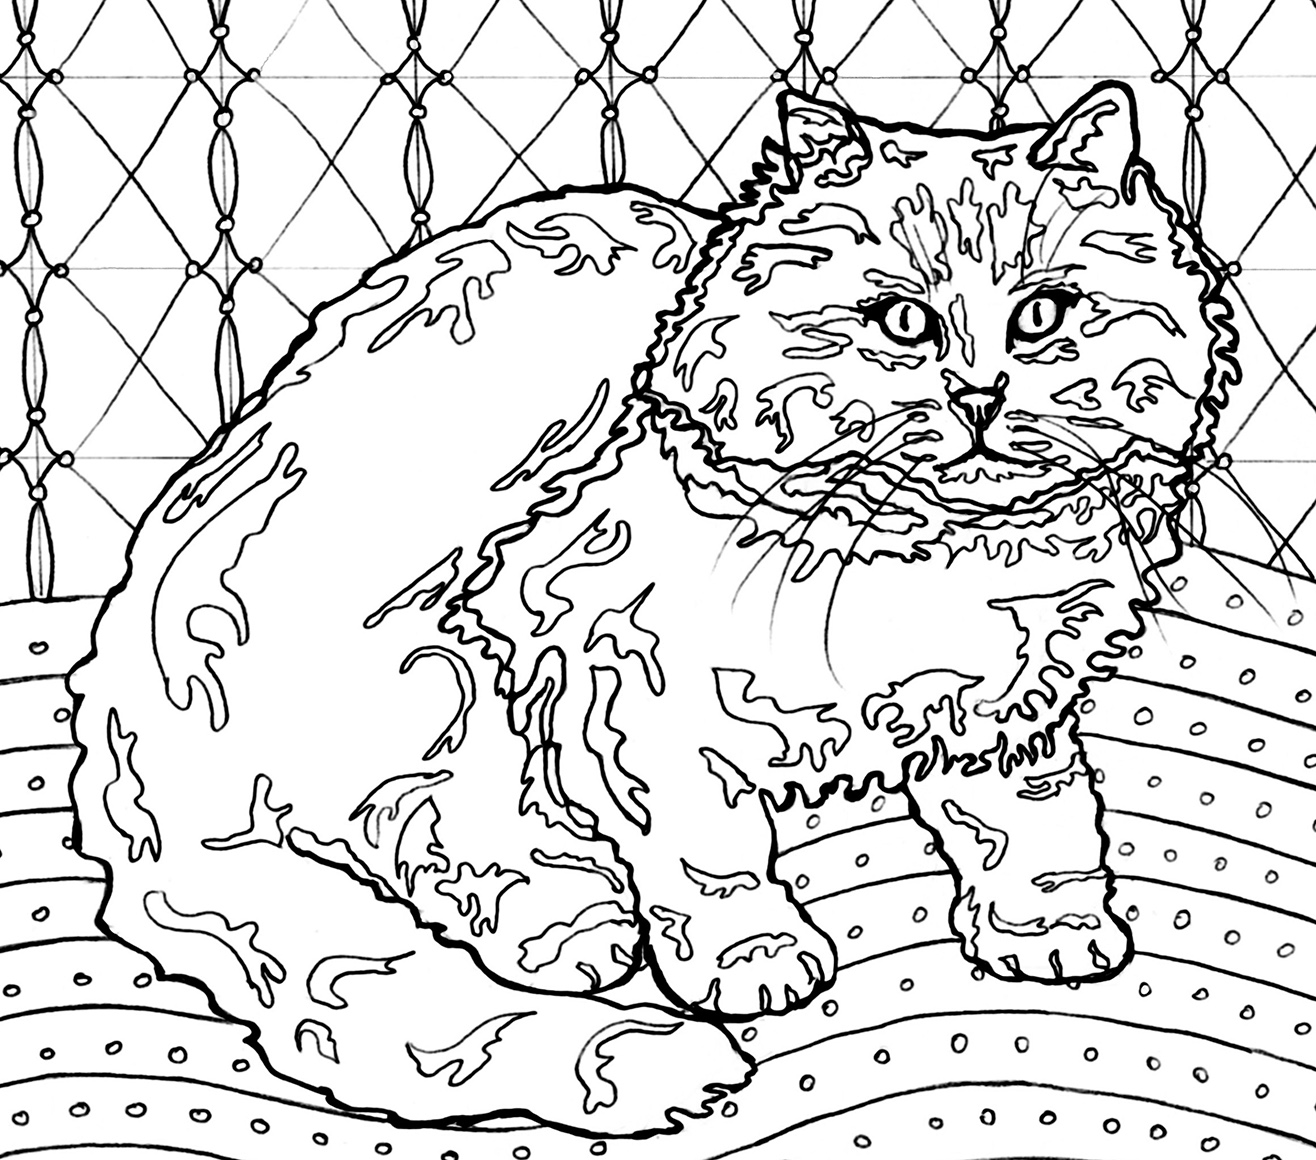 Drawings to Color - Cats Meow Art